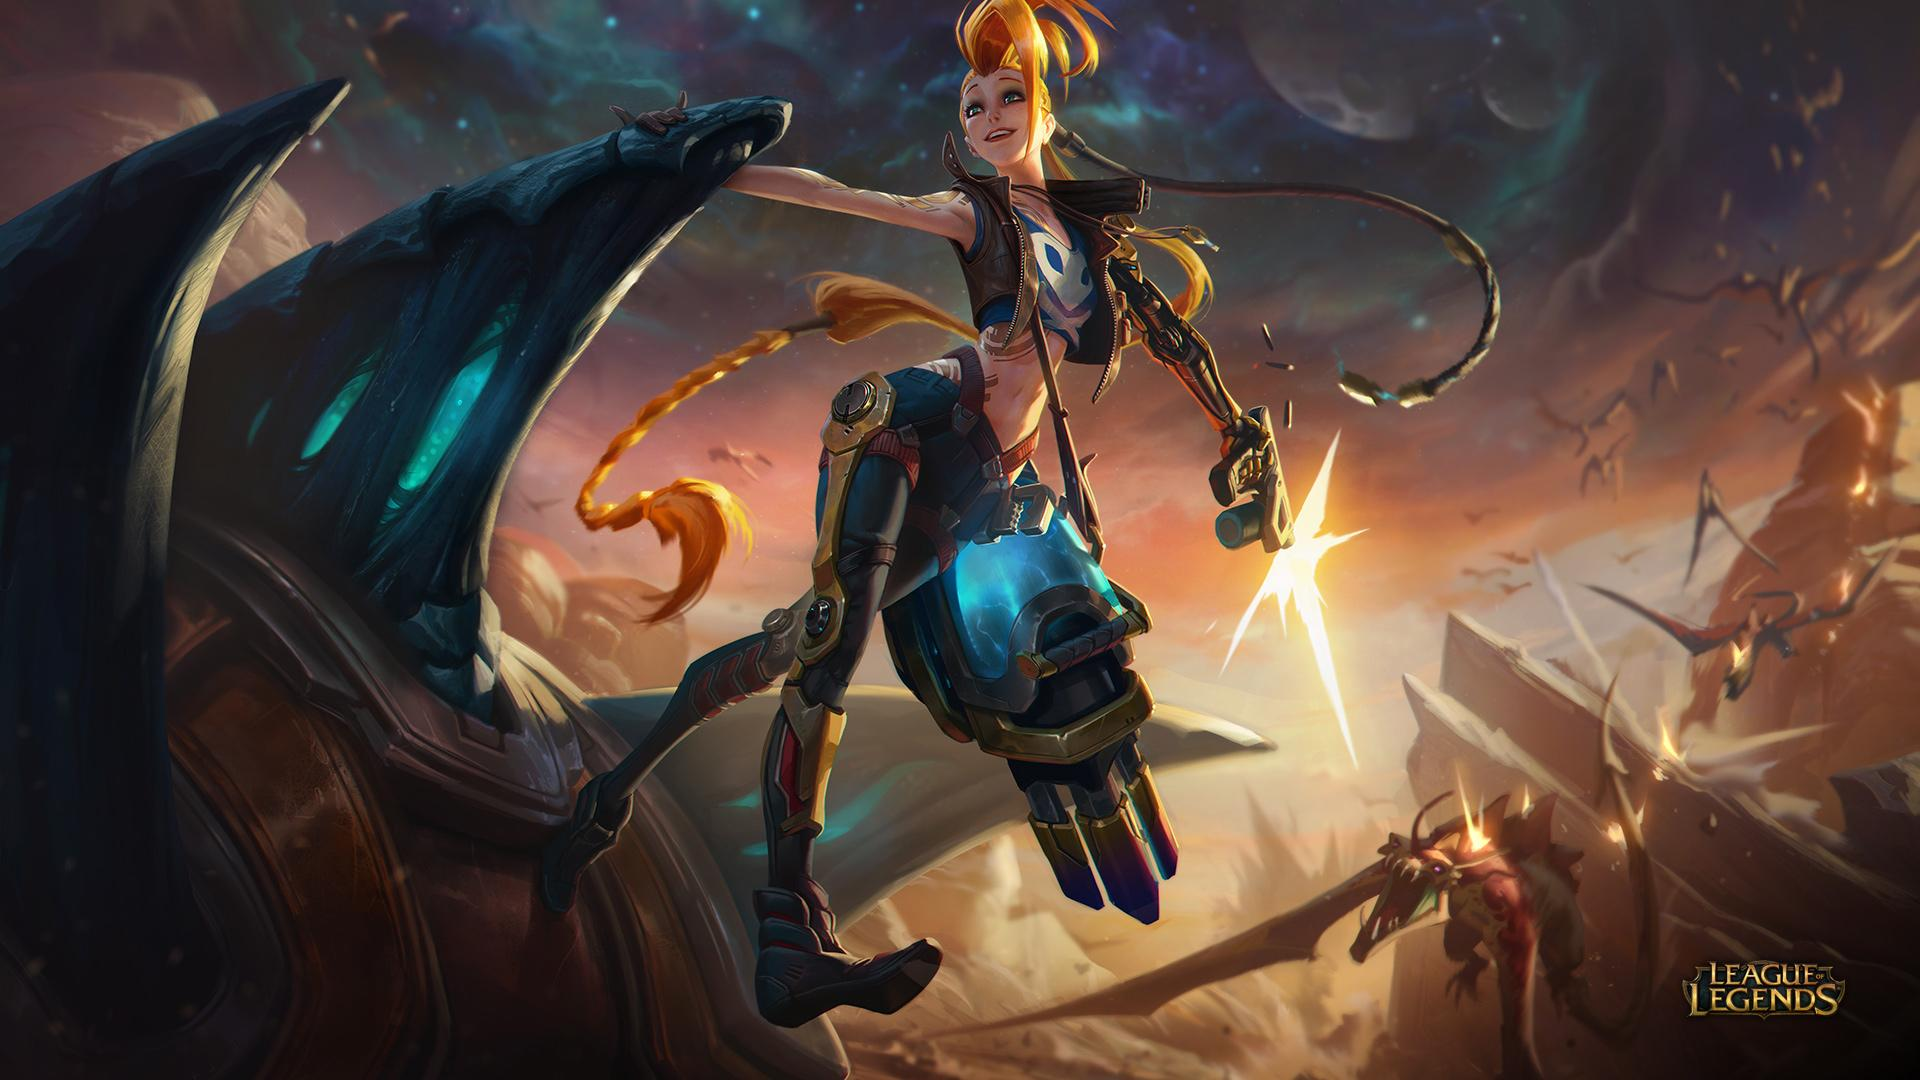 League of Legends 8 18 Patch Notes outline changes ahead of